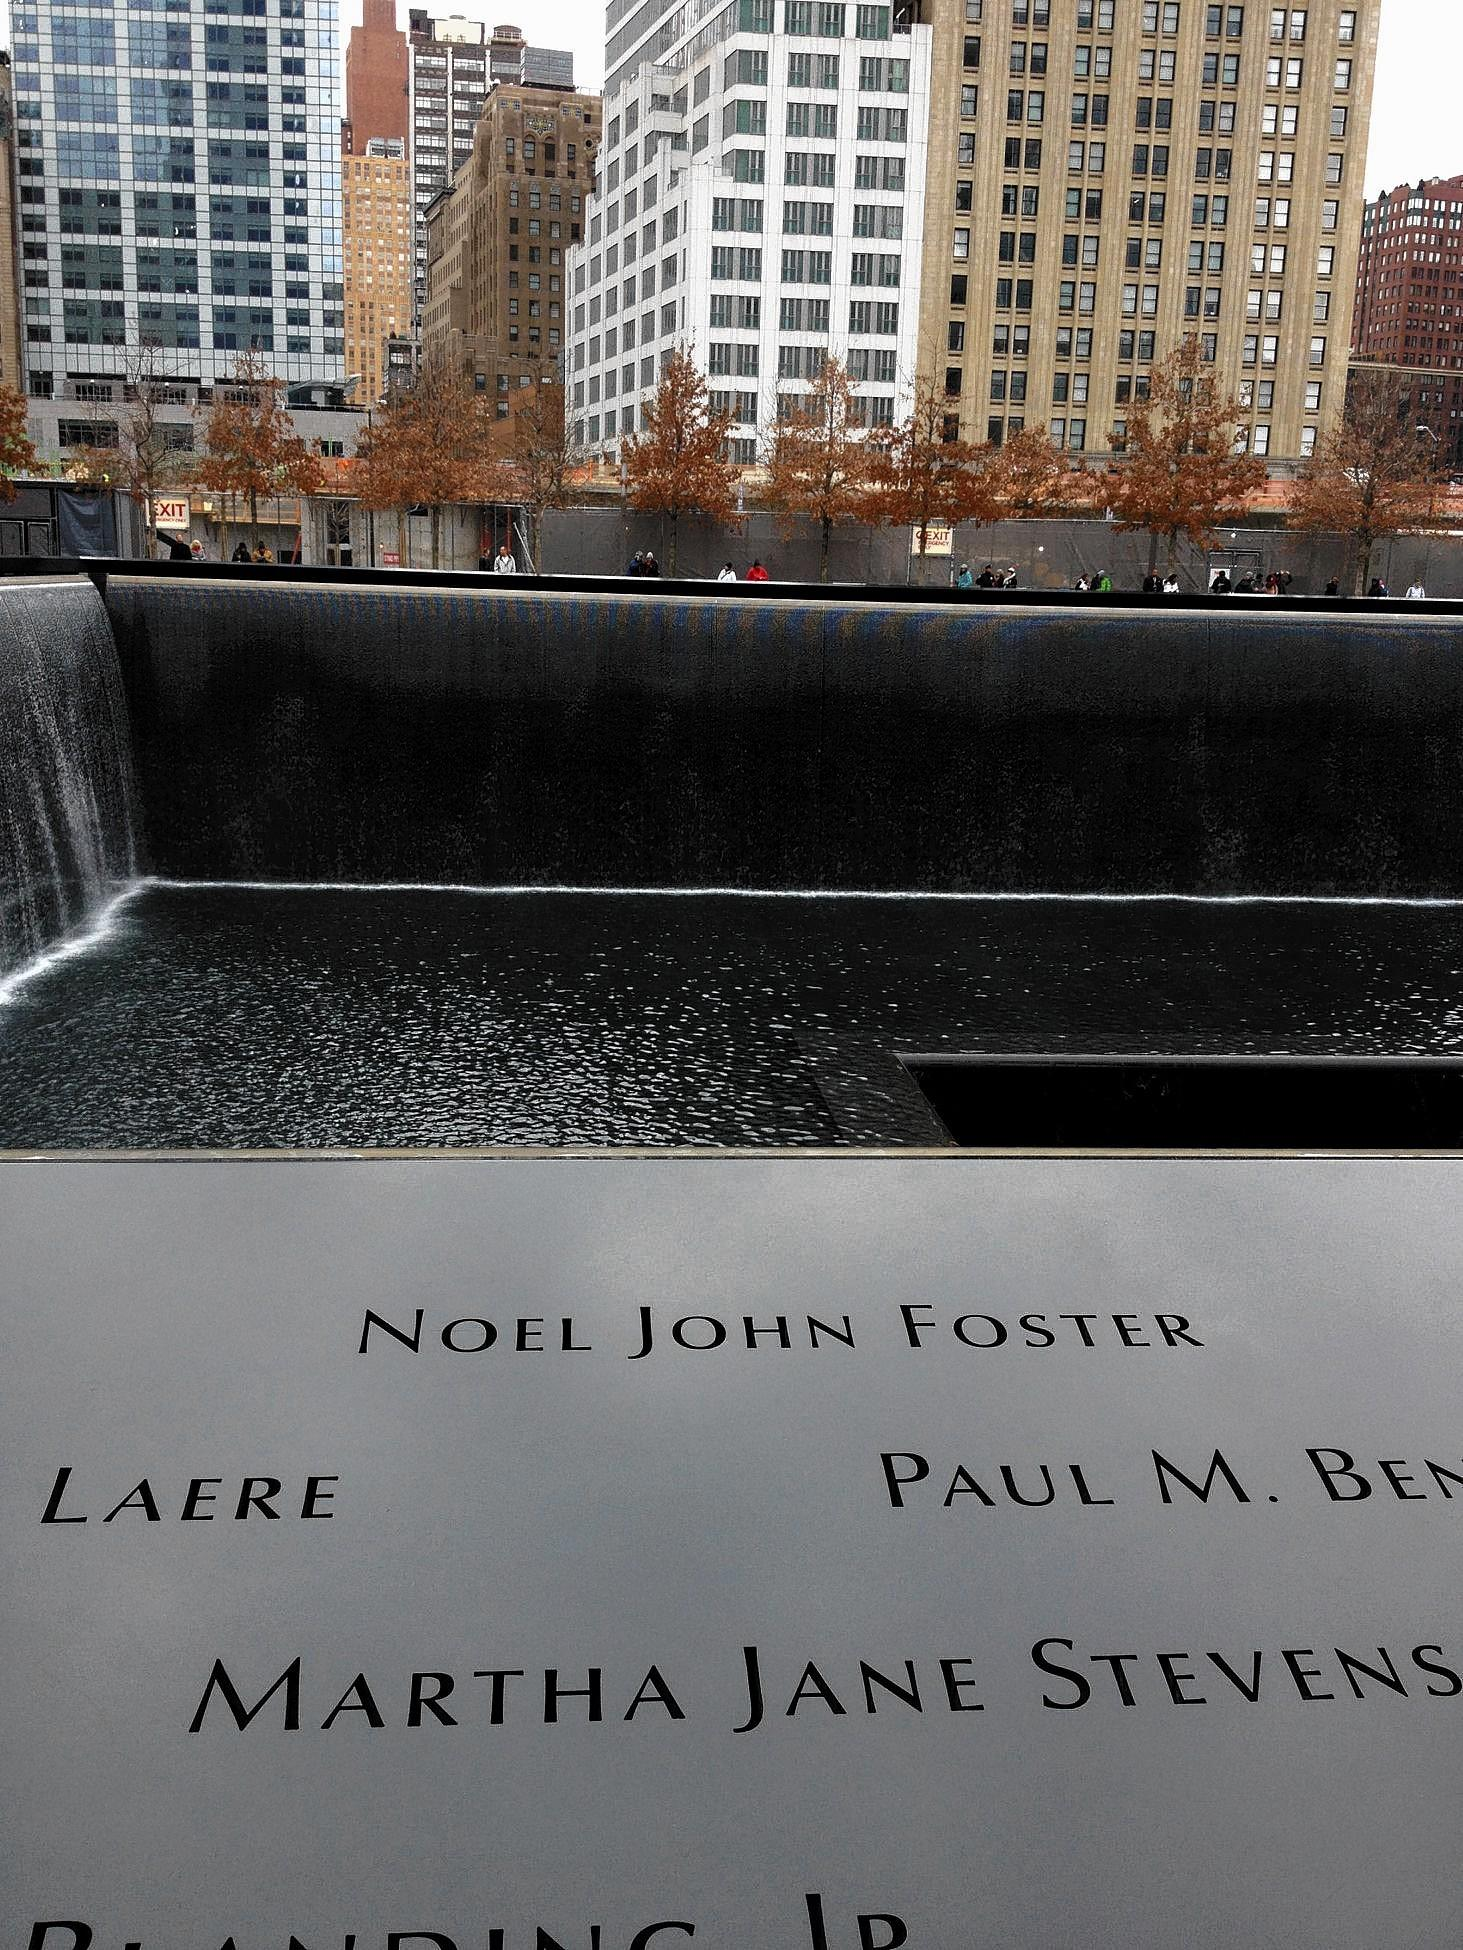 The name of Noel John Foster, a Moravian College graduate who was killed in the terrorist attack in New York City on 9/11, appears on the memorial at ground zero.